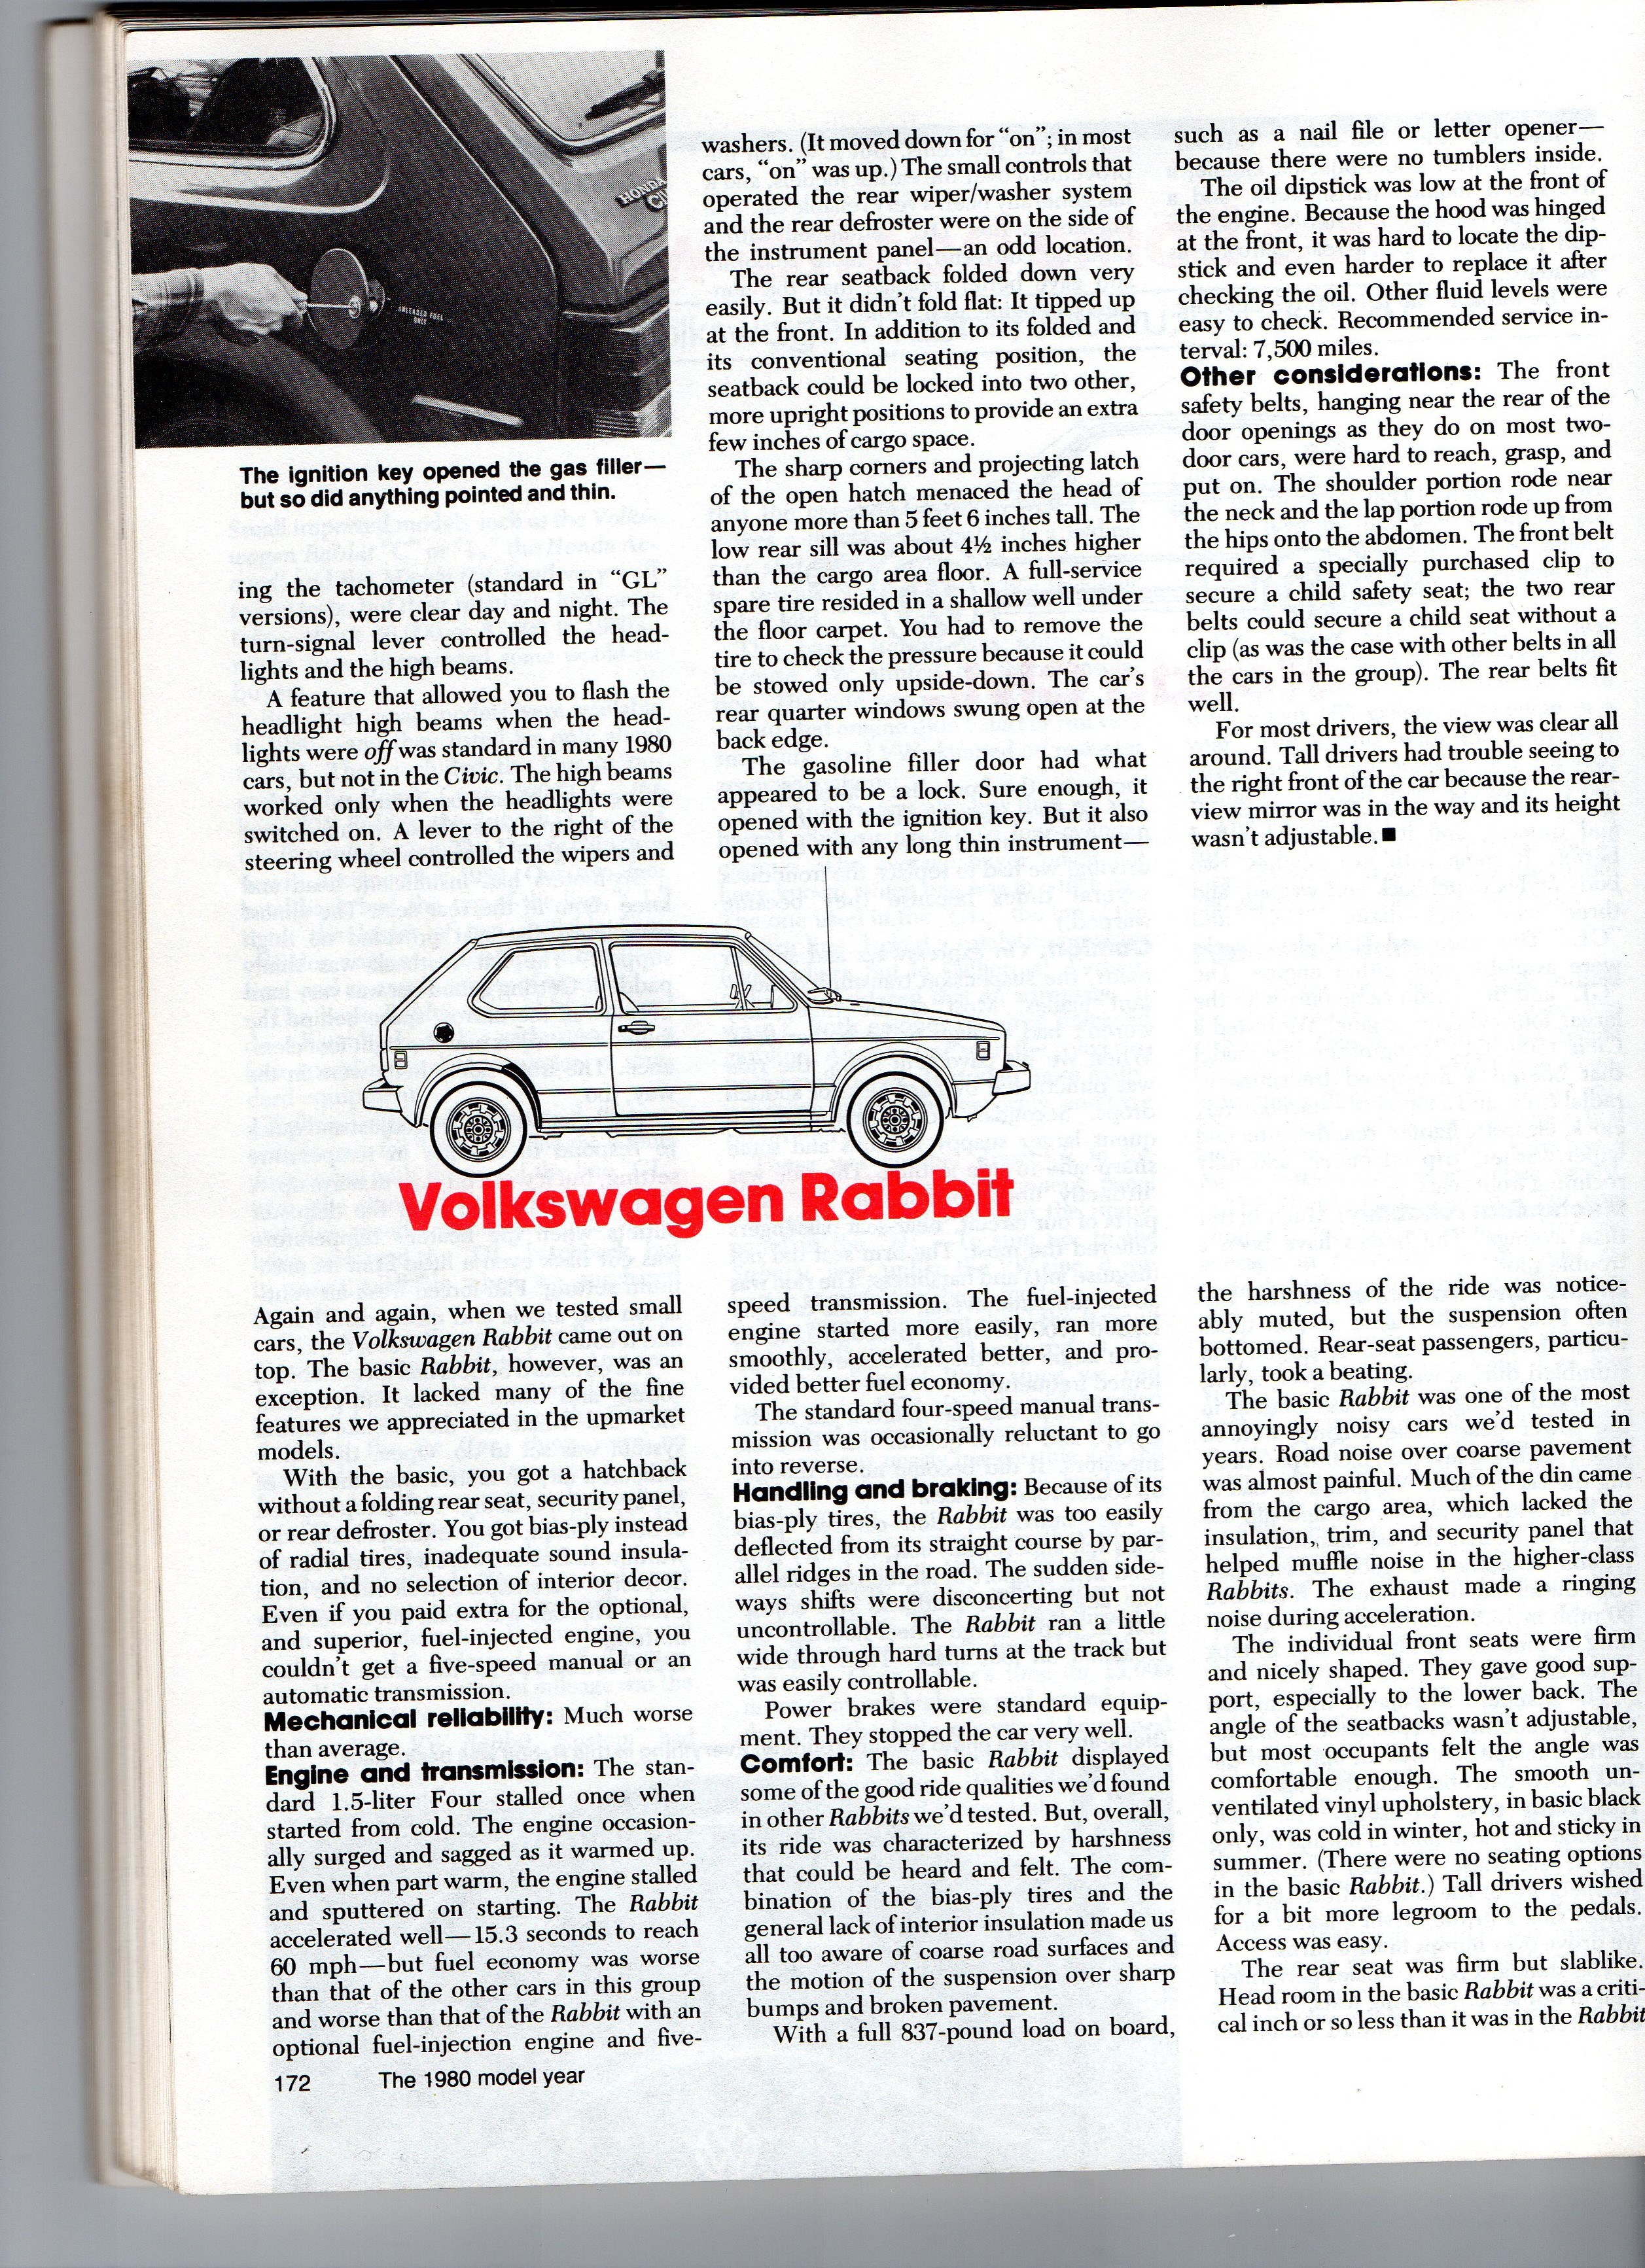 Coal 1978 Vw Rabbit Mine Was A Good One Gti Engines Further Fuel Pump Wiring Diagram On 1975 Beetle Heres Crs Test Report The Base Carbed From July 1980